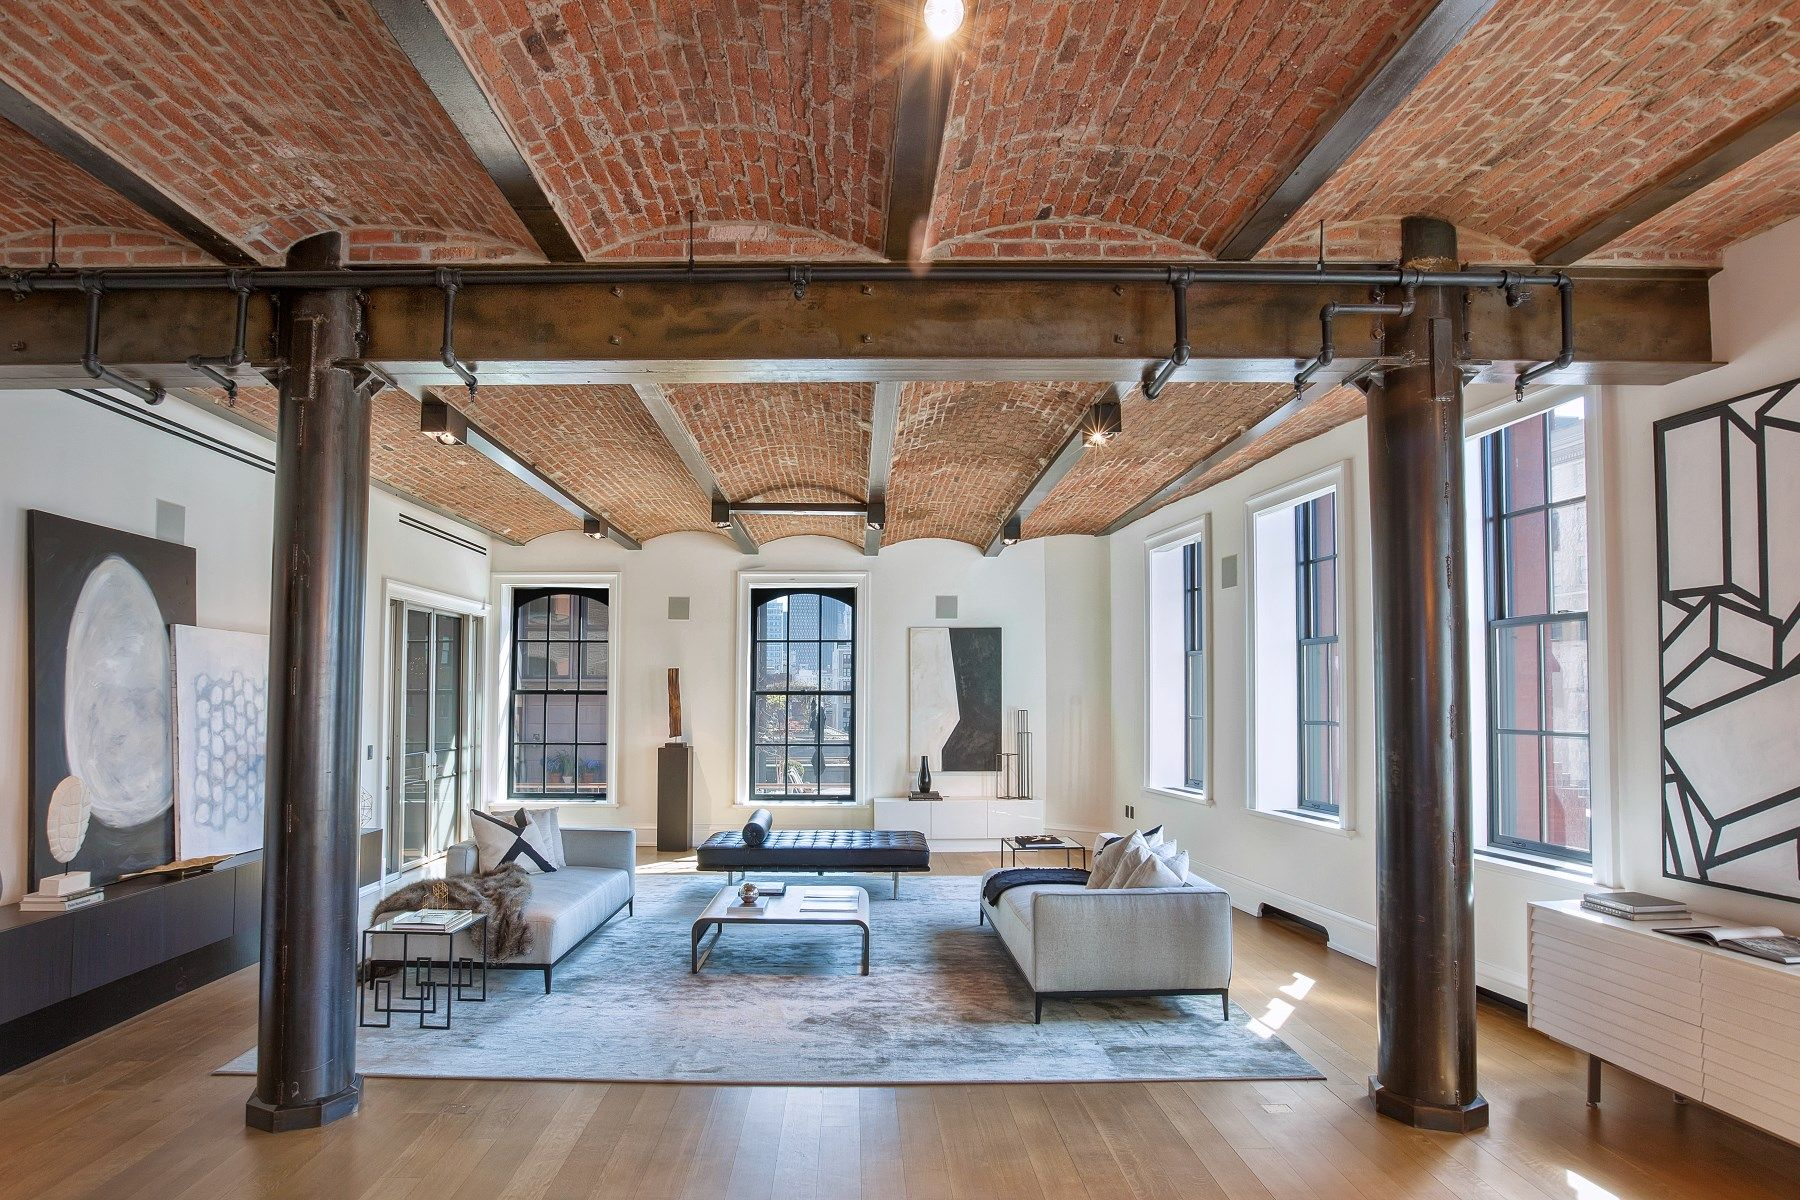 19th-Century NYC Industrial Building Turned Loft Asks $22M